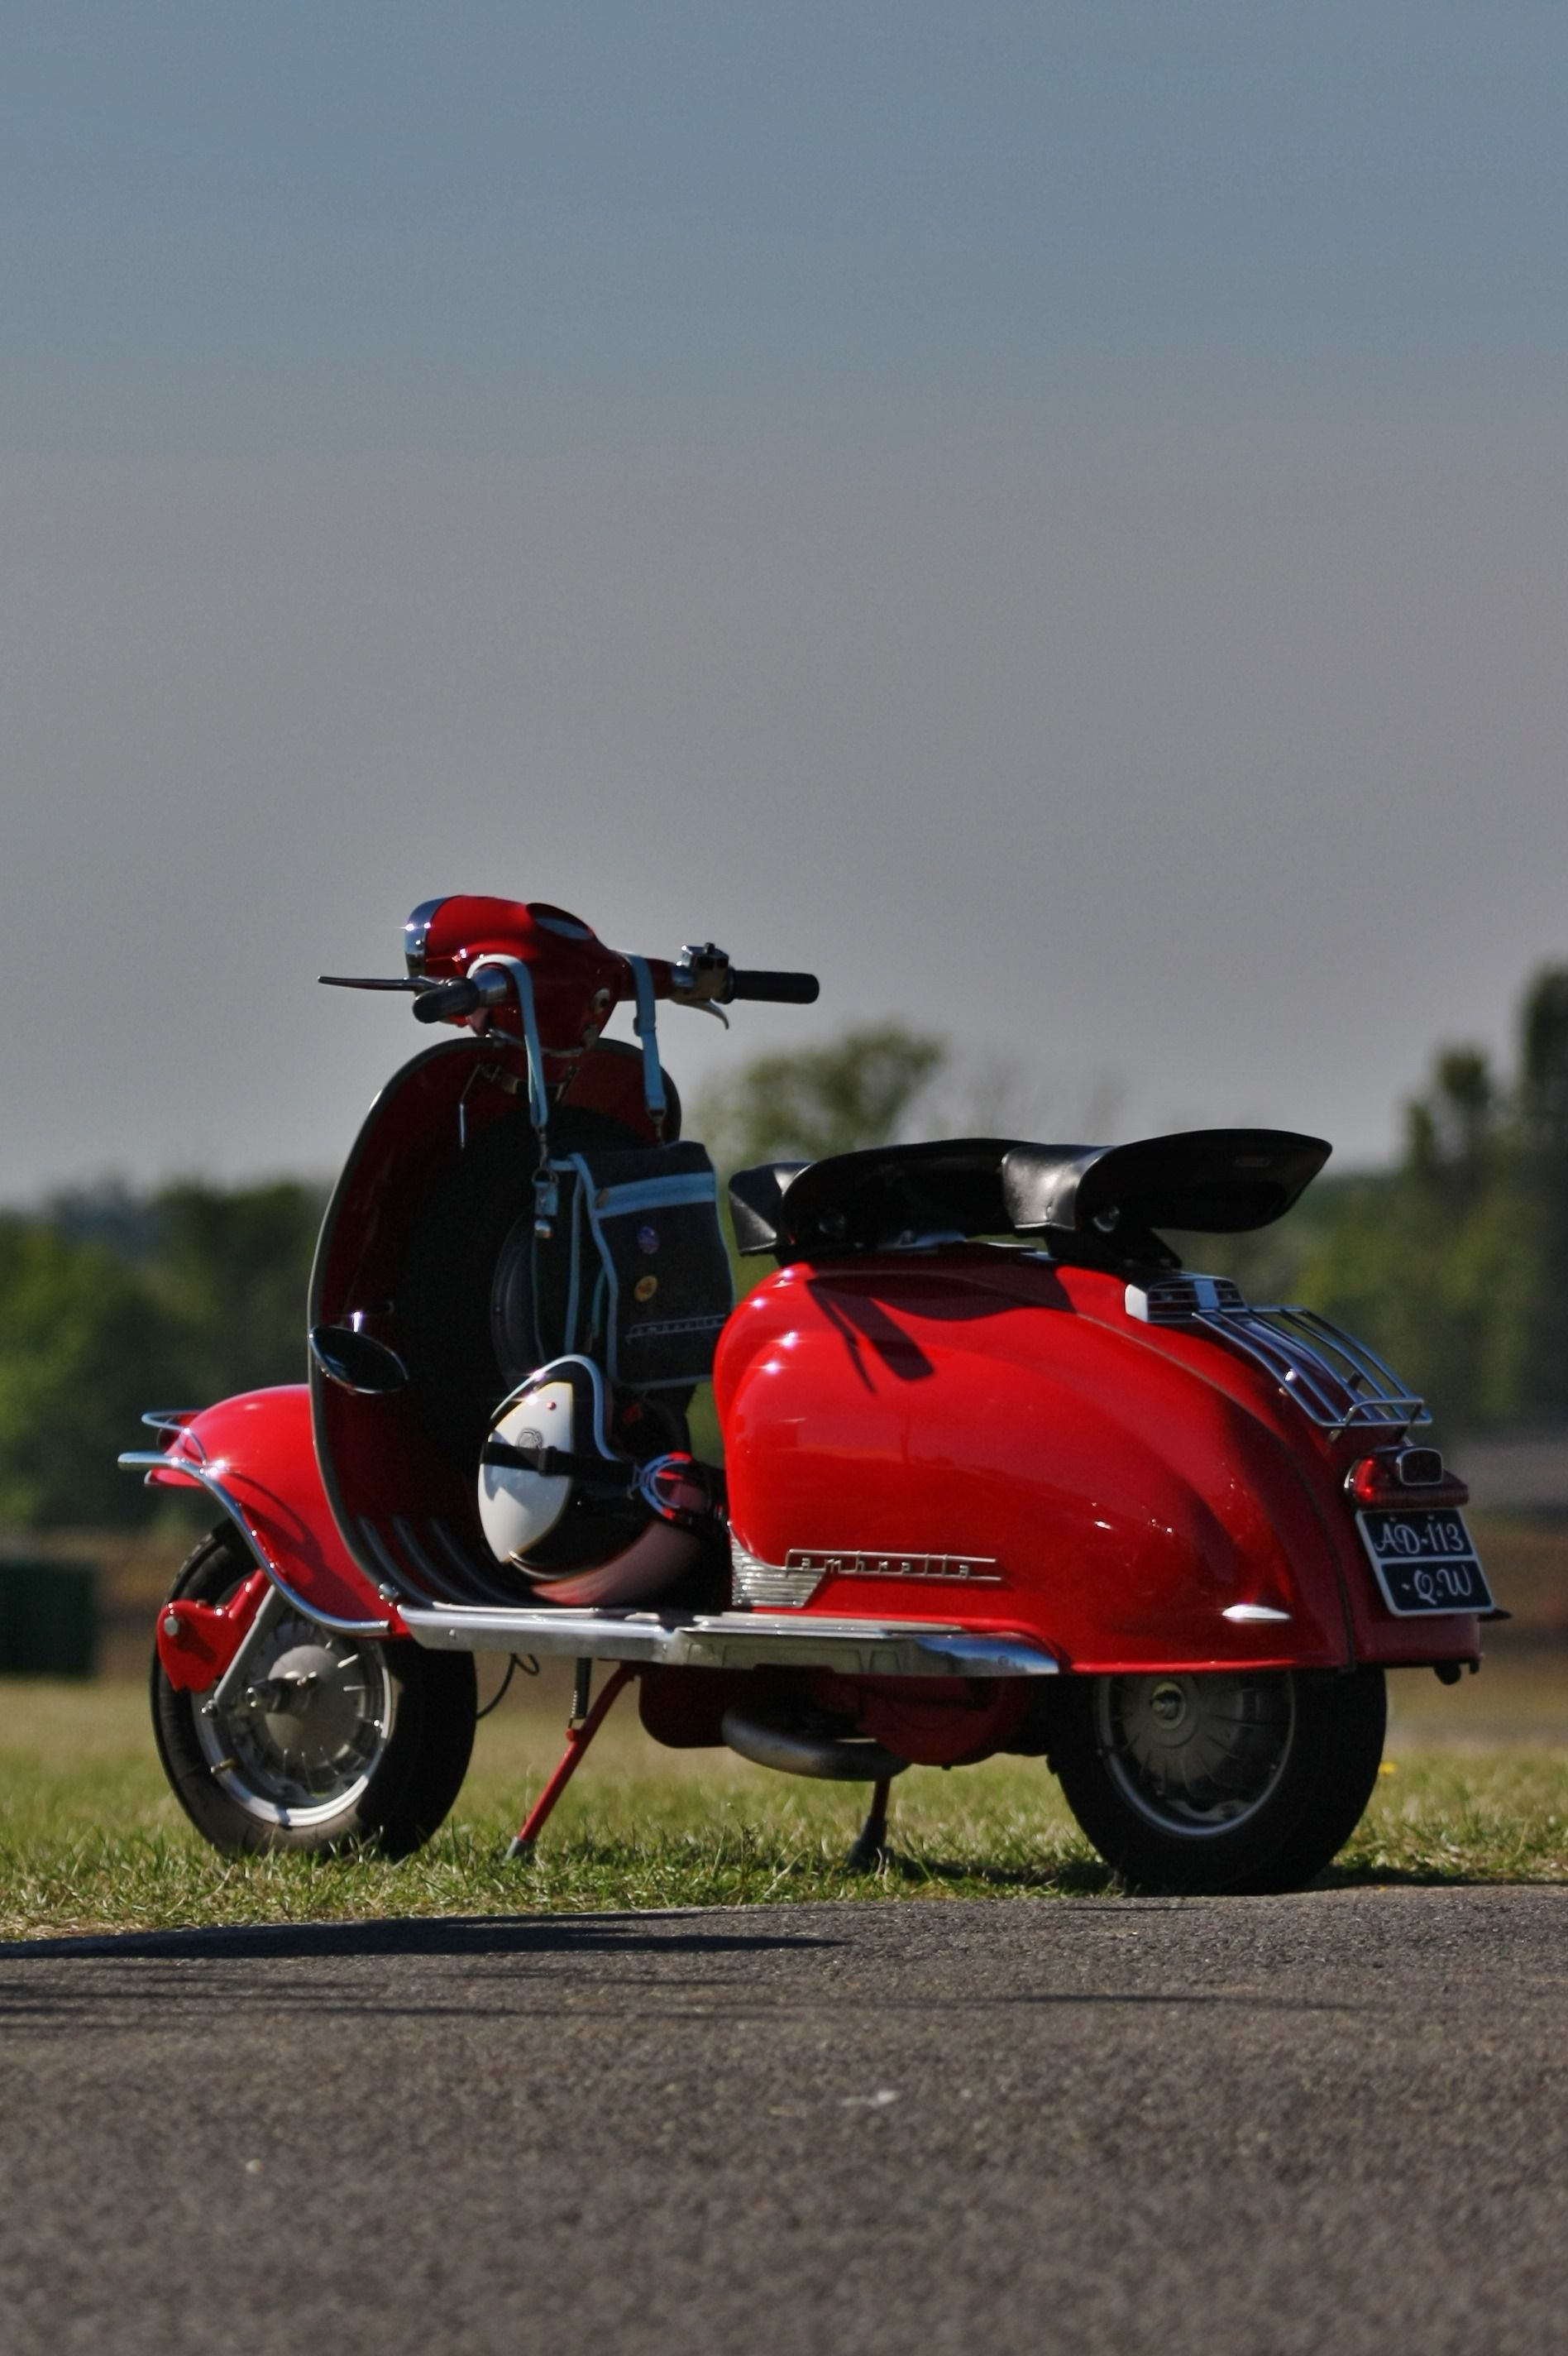 Lambretta#vespa#scooters#magazine#www.s-smag.coScooters#vespa#lambretta SCOOTERS & STYLE is a quarterly independant bi-lingual (French / English) magazine which essentially deals with the world of vintage-labeled scooter, as well as the lifestyle that characterizes their fans: